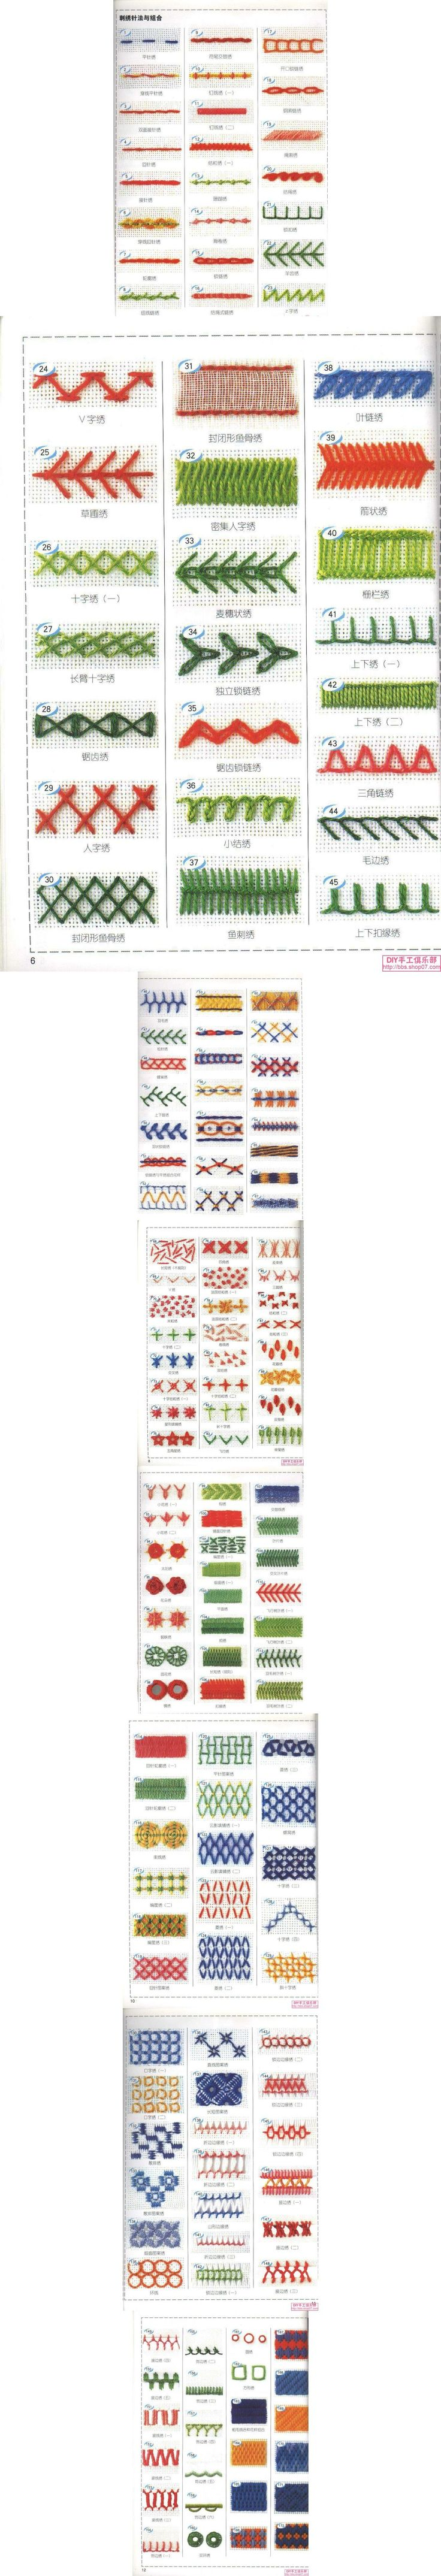 172 Embroidery Stitches and Combinations